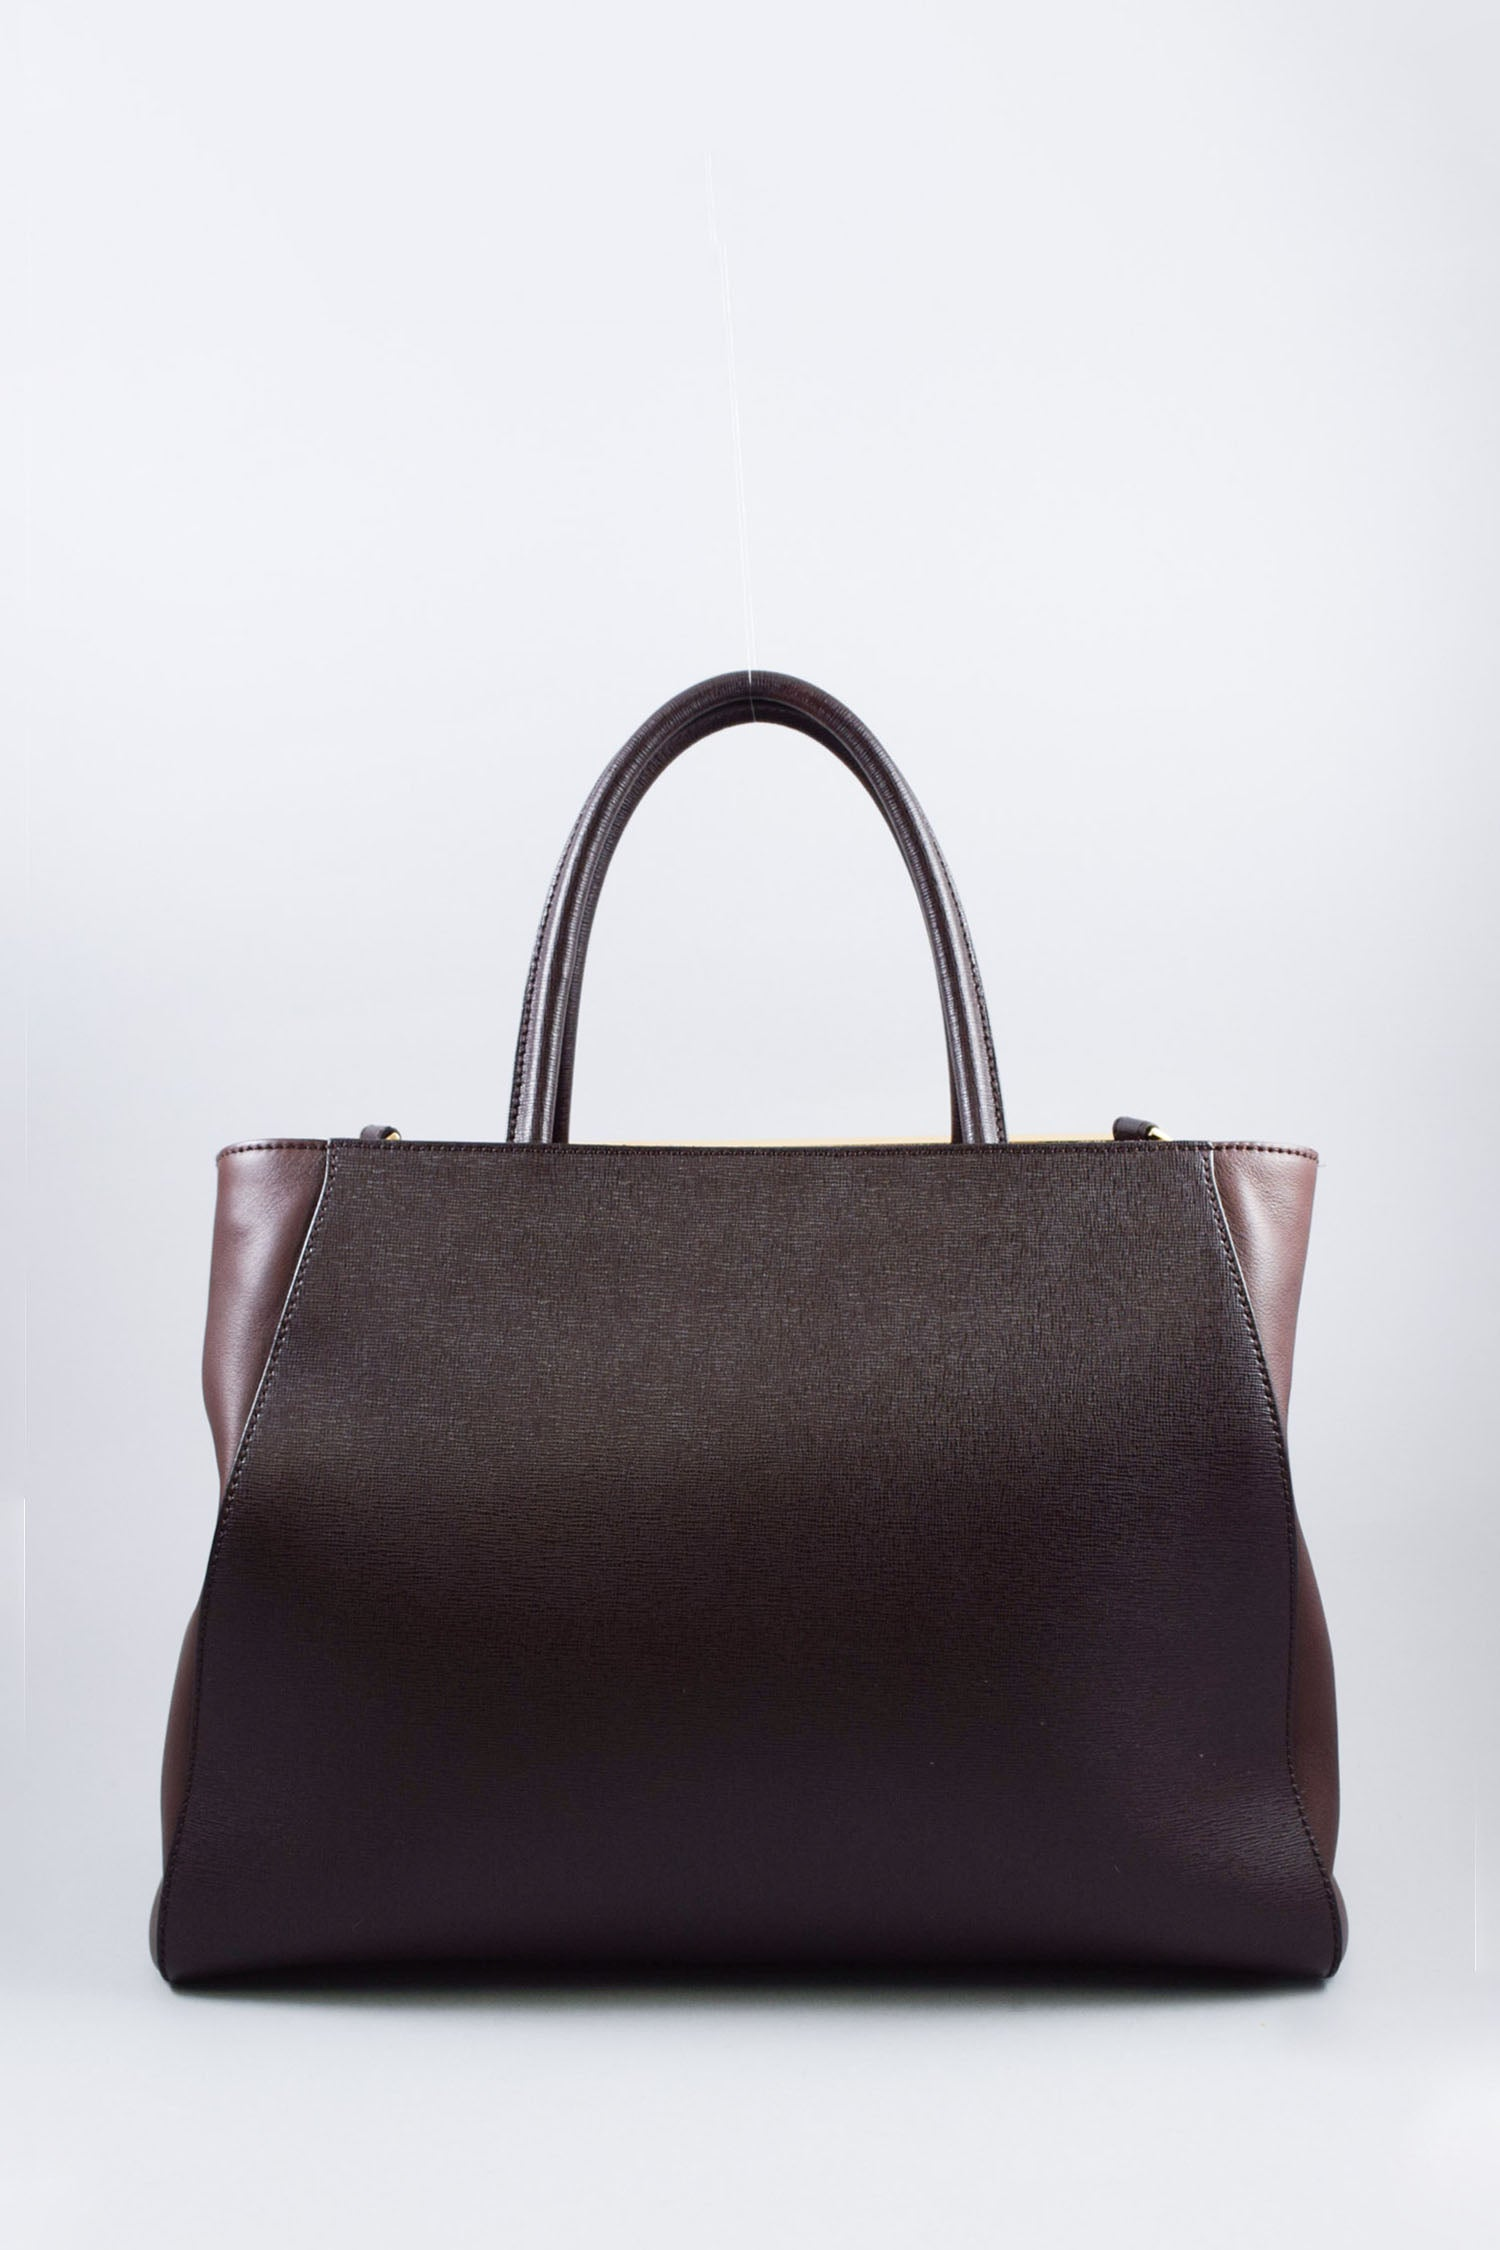 Fendi Brown Medium 2Jours Handbag